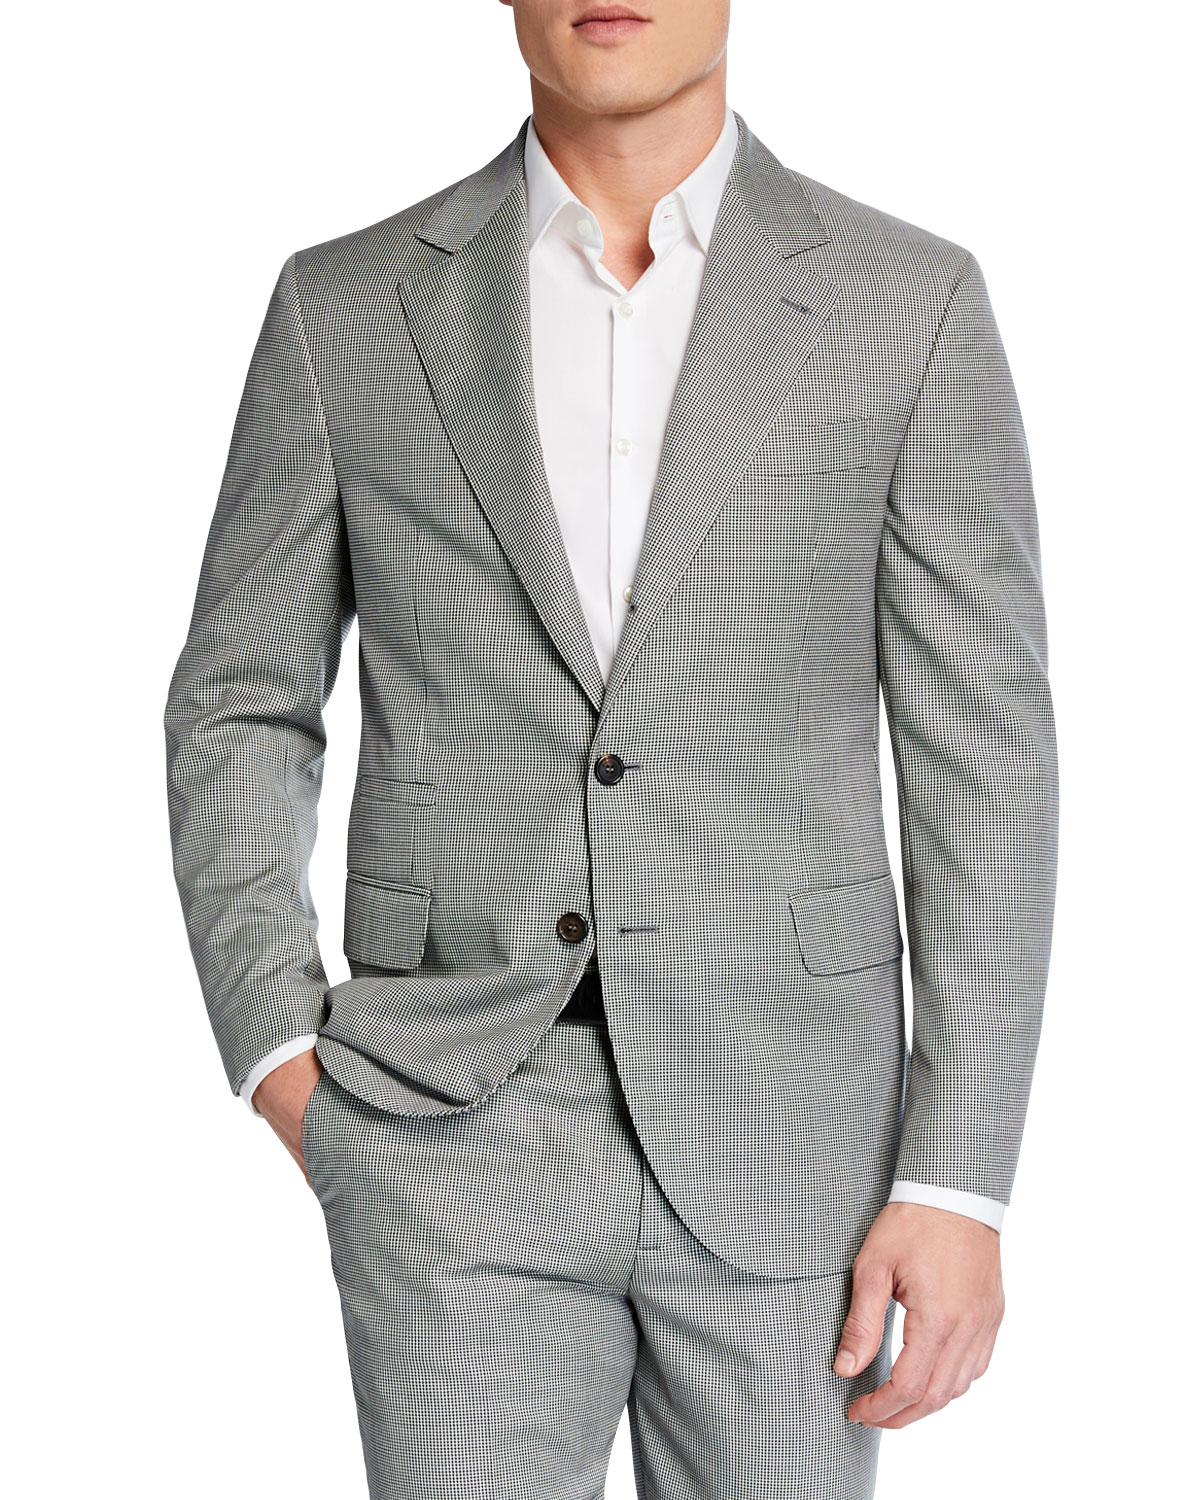 Brunello Cucinelli Suits MEN'S MICRO-HOUNDSTOOTH TWO-PIECE WOOL SUIT